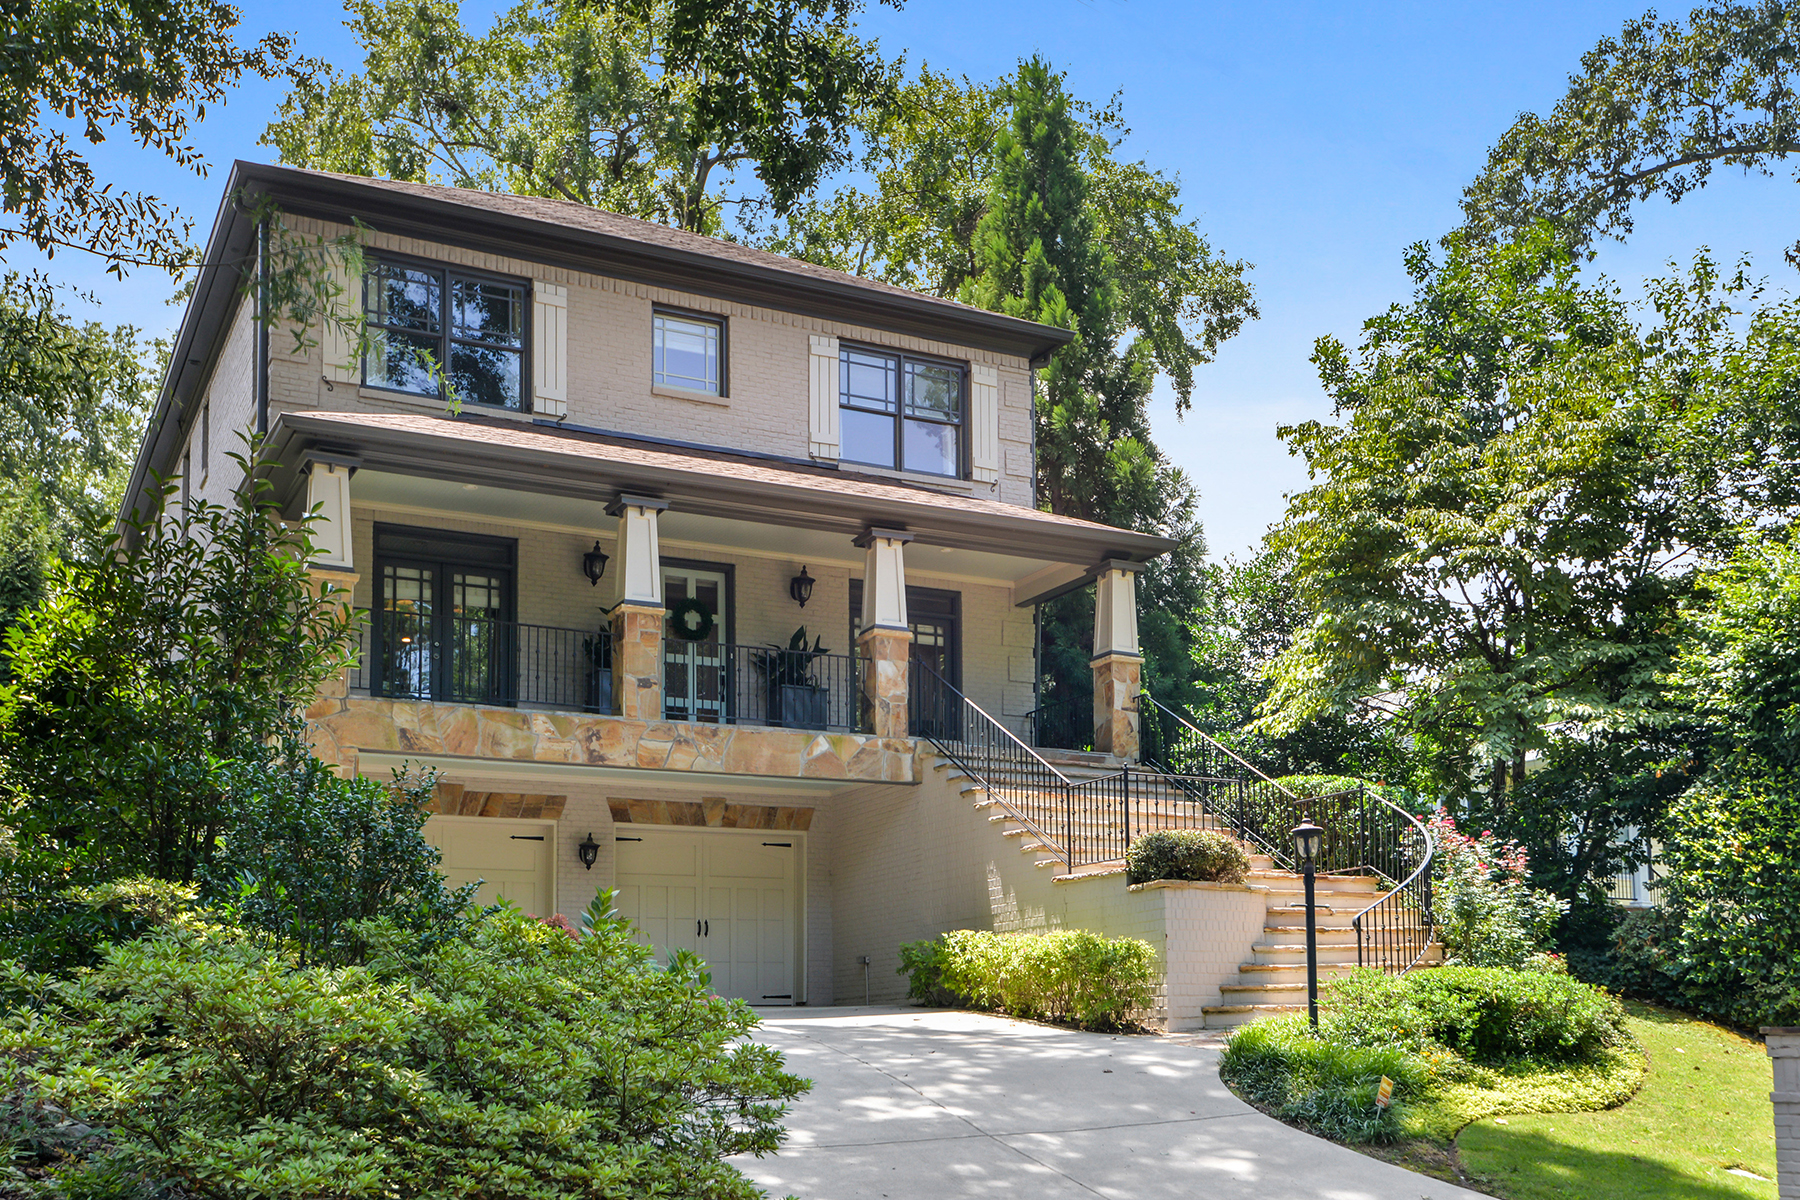 Single Family Homes のために 売買 アット Elegant Yet Casual Oasis-Like Home With Pool In The Heart Of Brookhaven 1269 Sylvan Circle NE, Brookhaven, ジョージア 30319 アメリカ